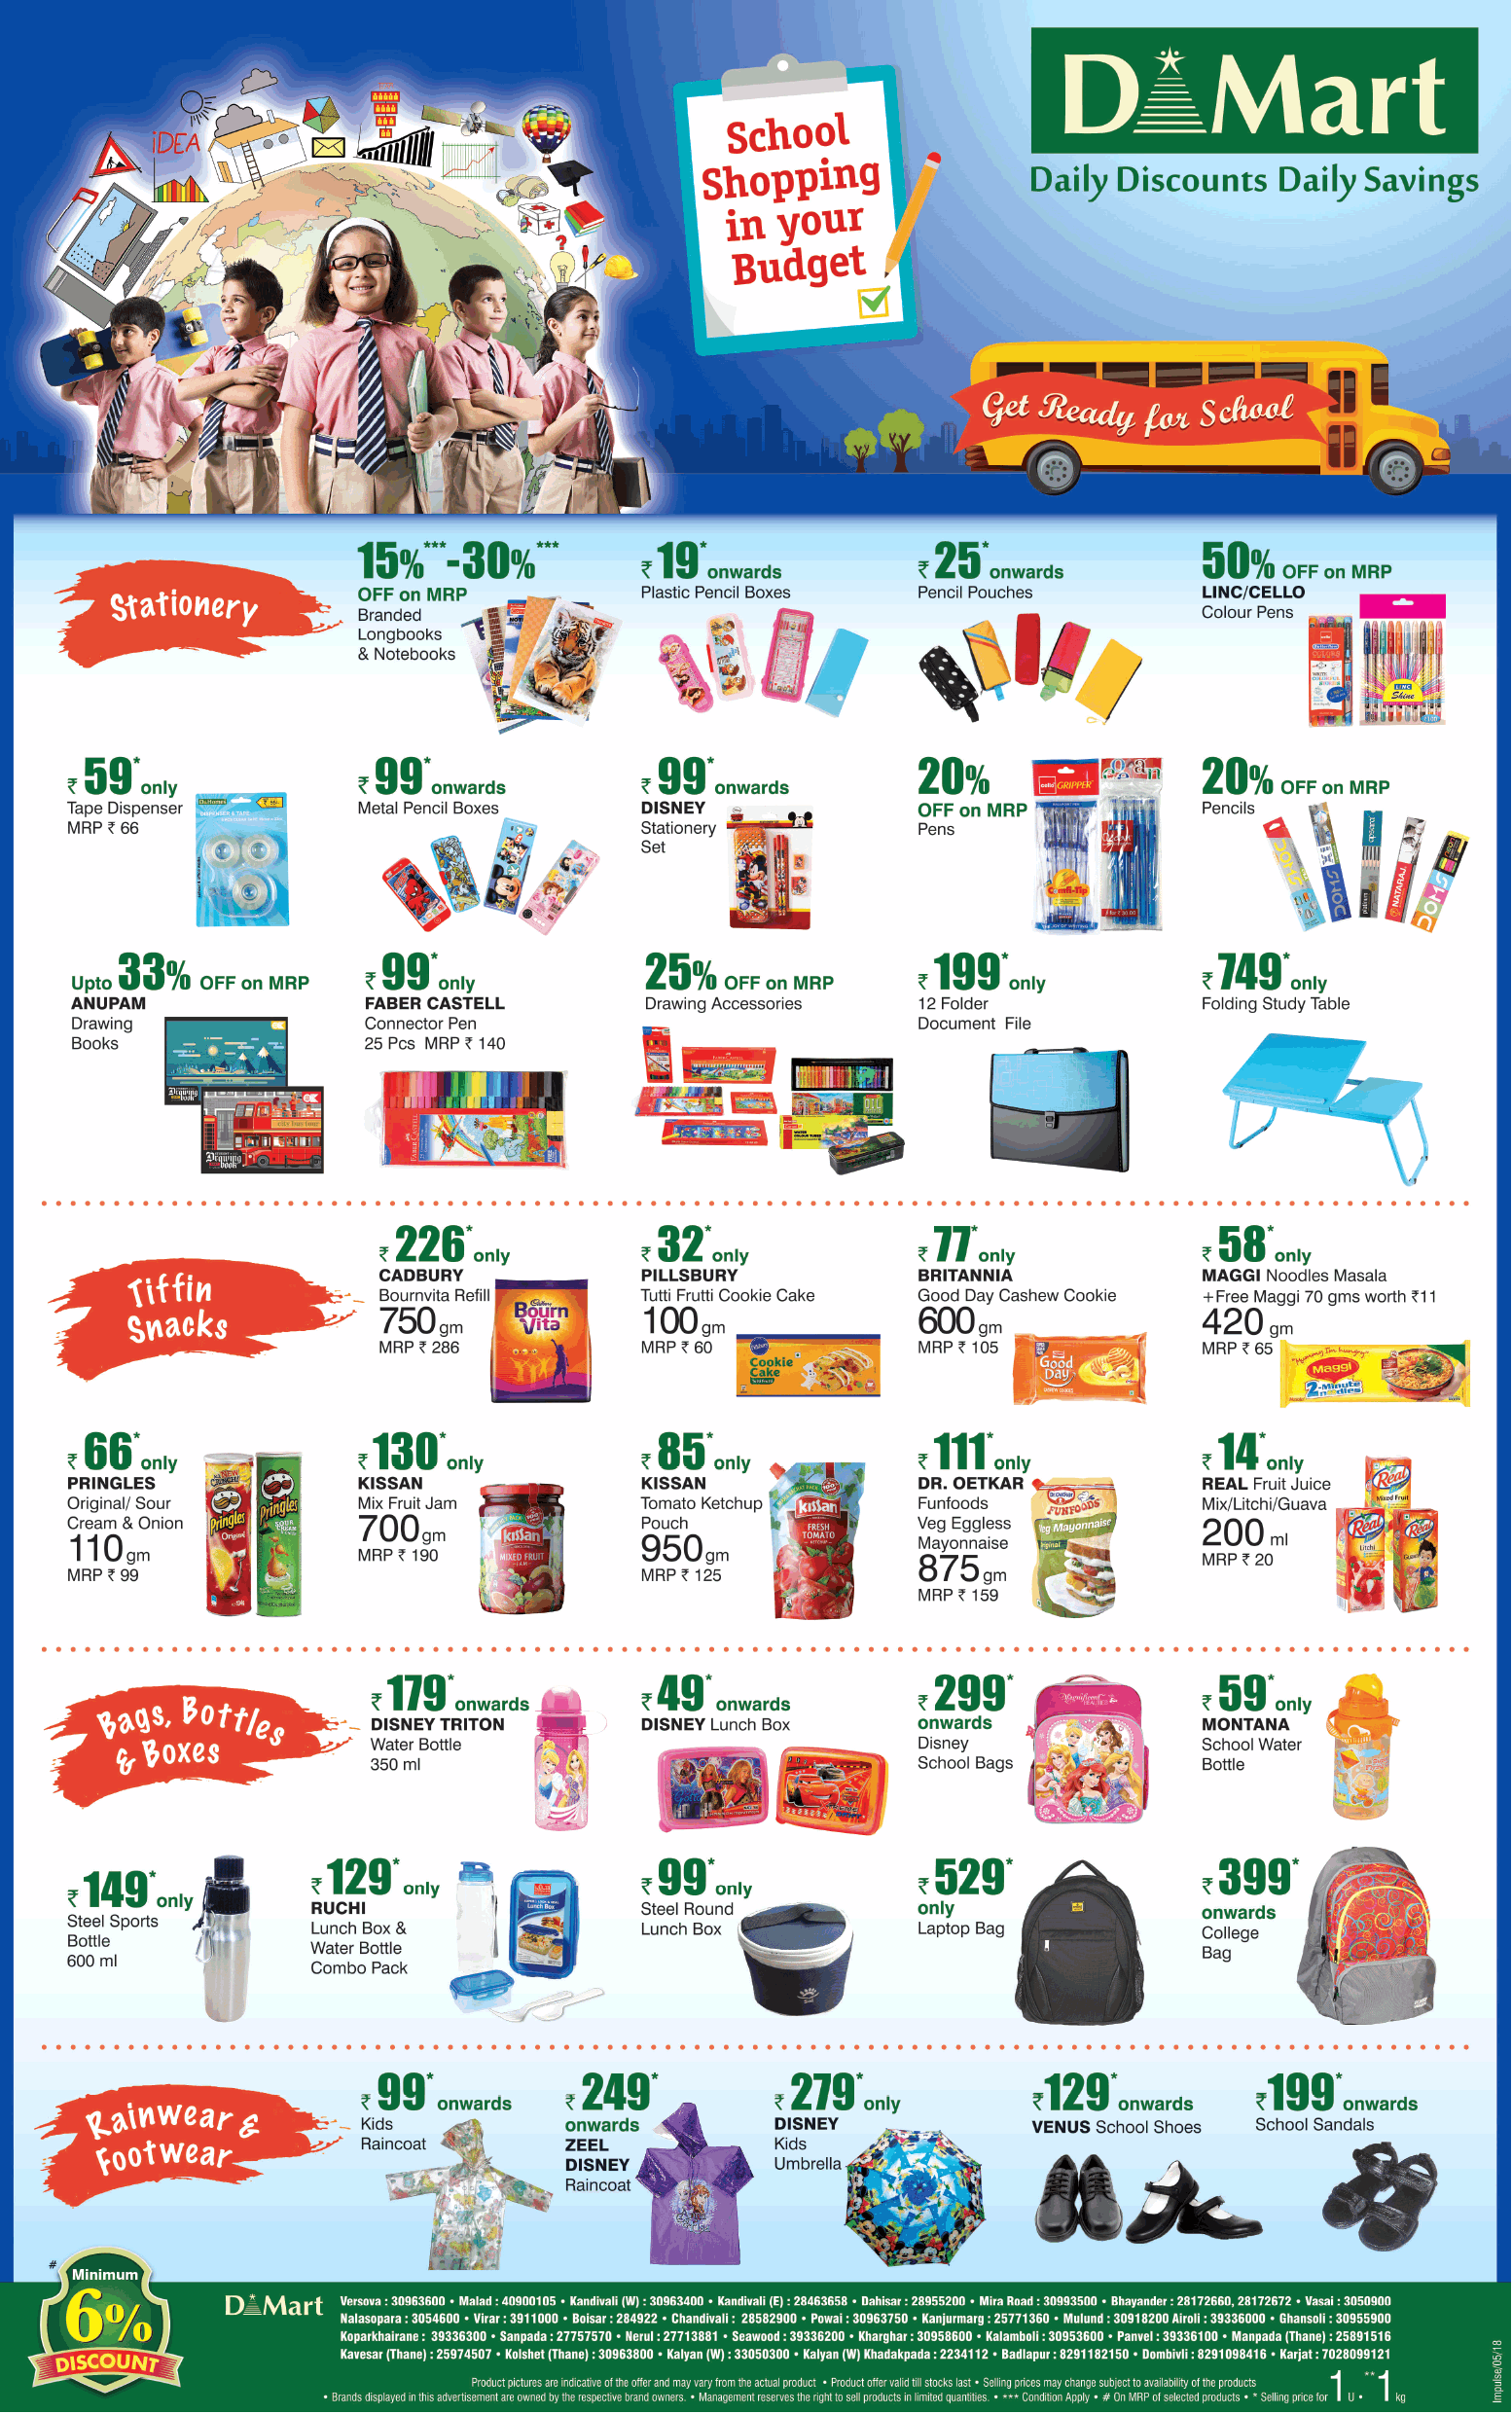 c9c462fc9 D Mart School Shopping In Your Budget Ad - Advert Gallery